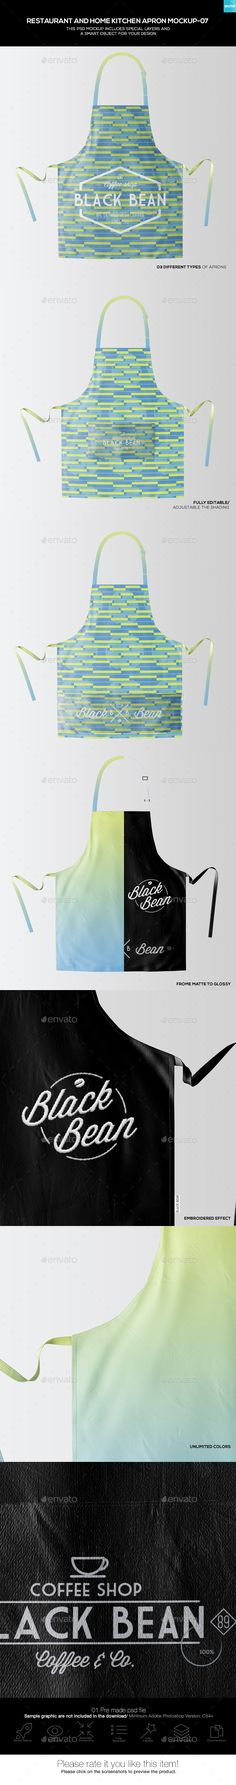 #Restaurant and Home Kietchen Apron #Mockup-07 - Miscellaneous Apparel Download here: https://graphicriver.net/item/restaurant-and-home-kietchen-apron-mockup07/19500850?ref=alena994